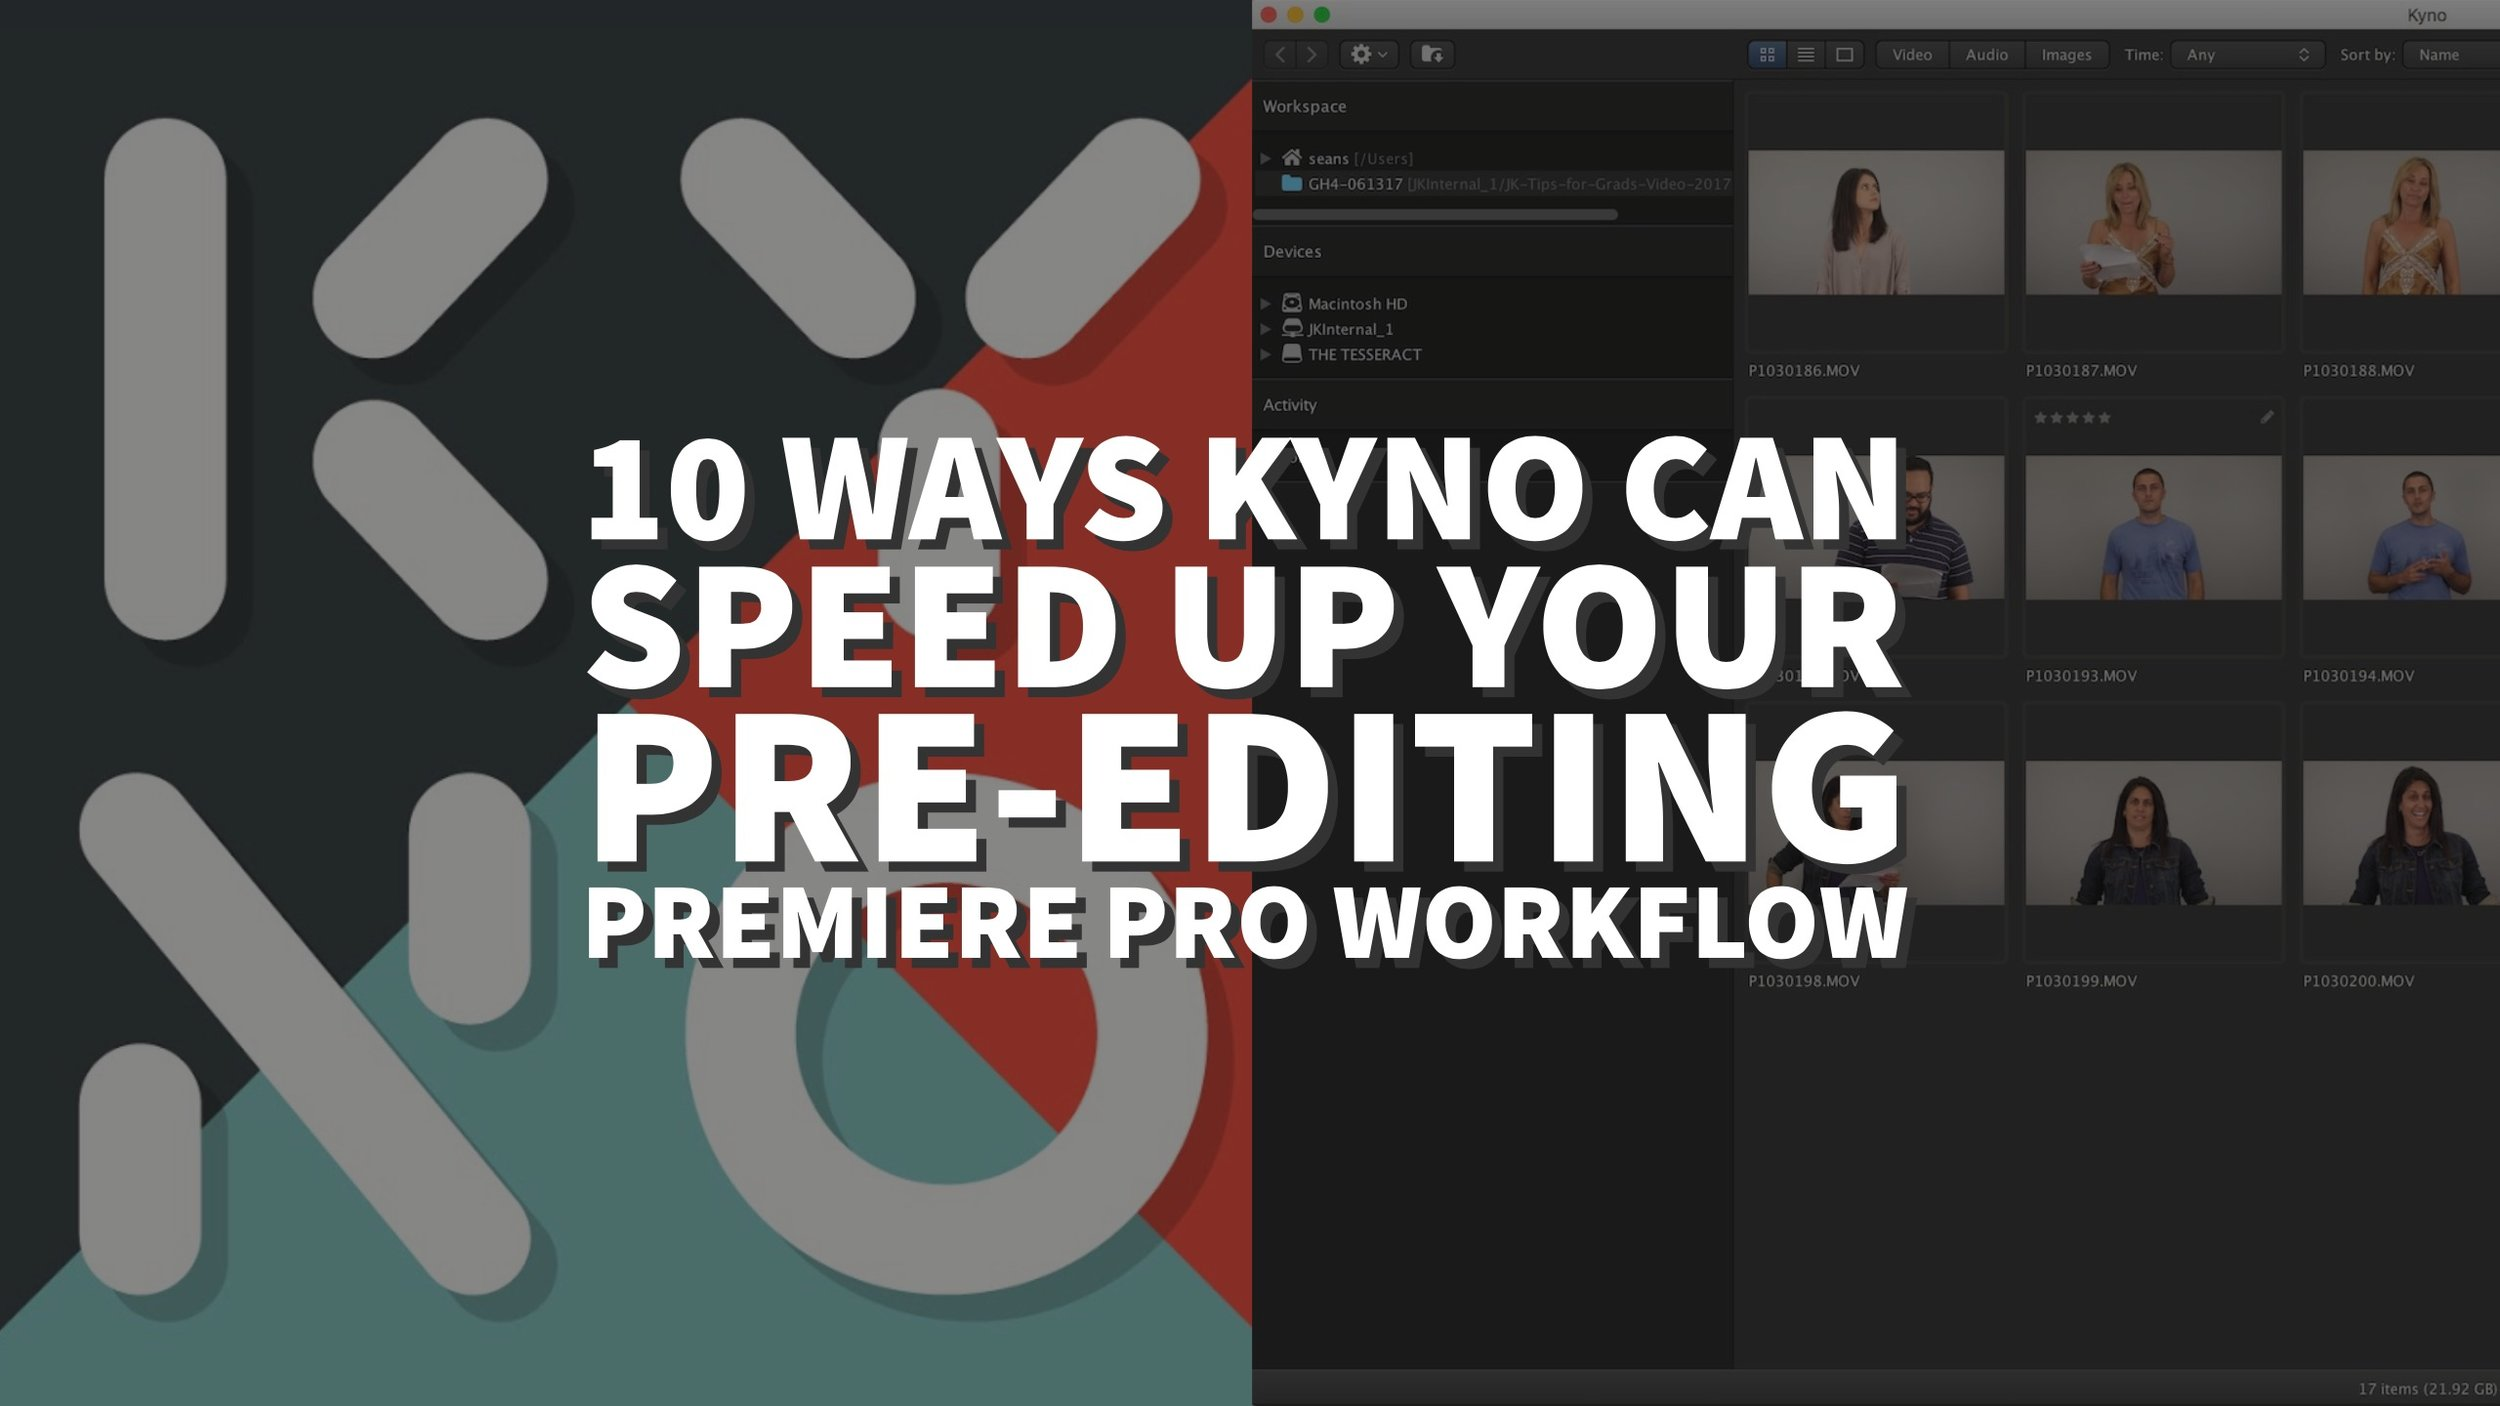 10-ways-can-speed-up-your-pre-editing-workflow.jpg